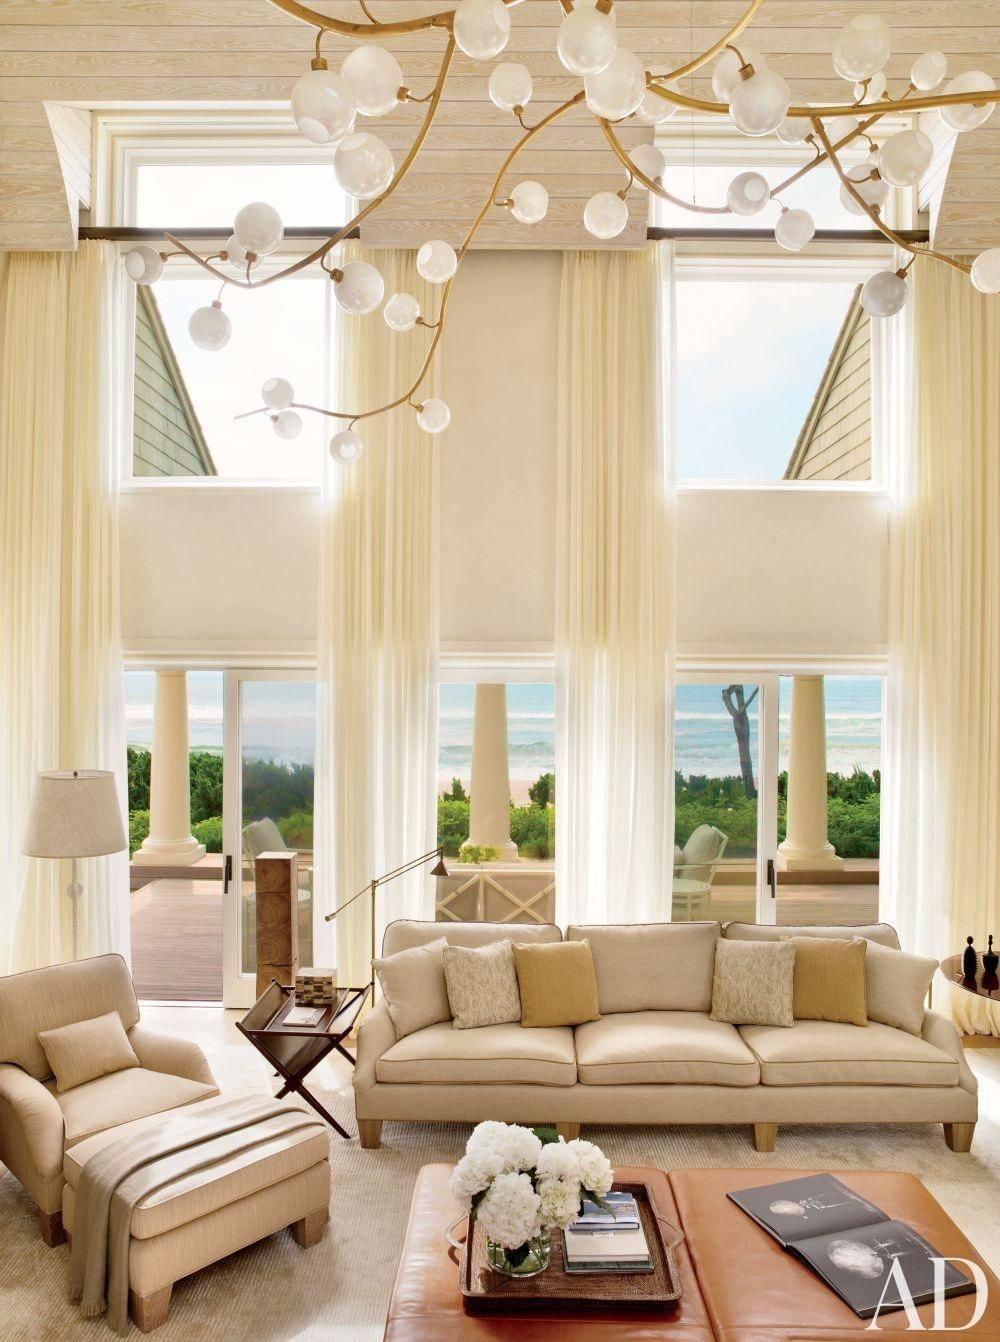 Breathtaking Selection Of Neutral Fabrics, Furniture And Objects Make Up  This Living Room.